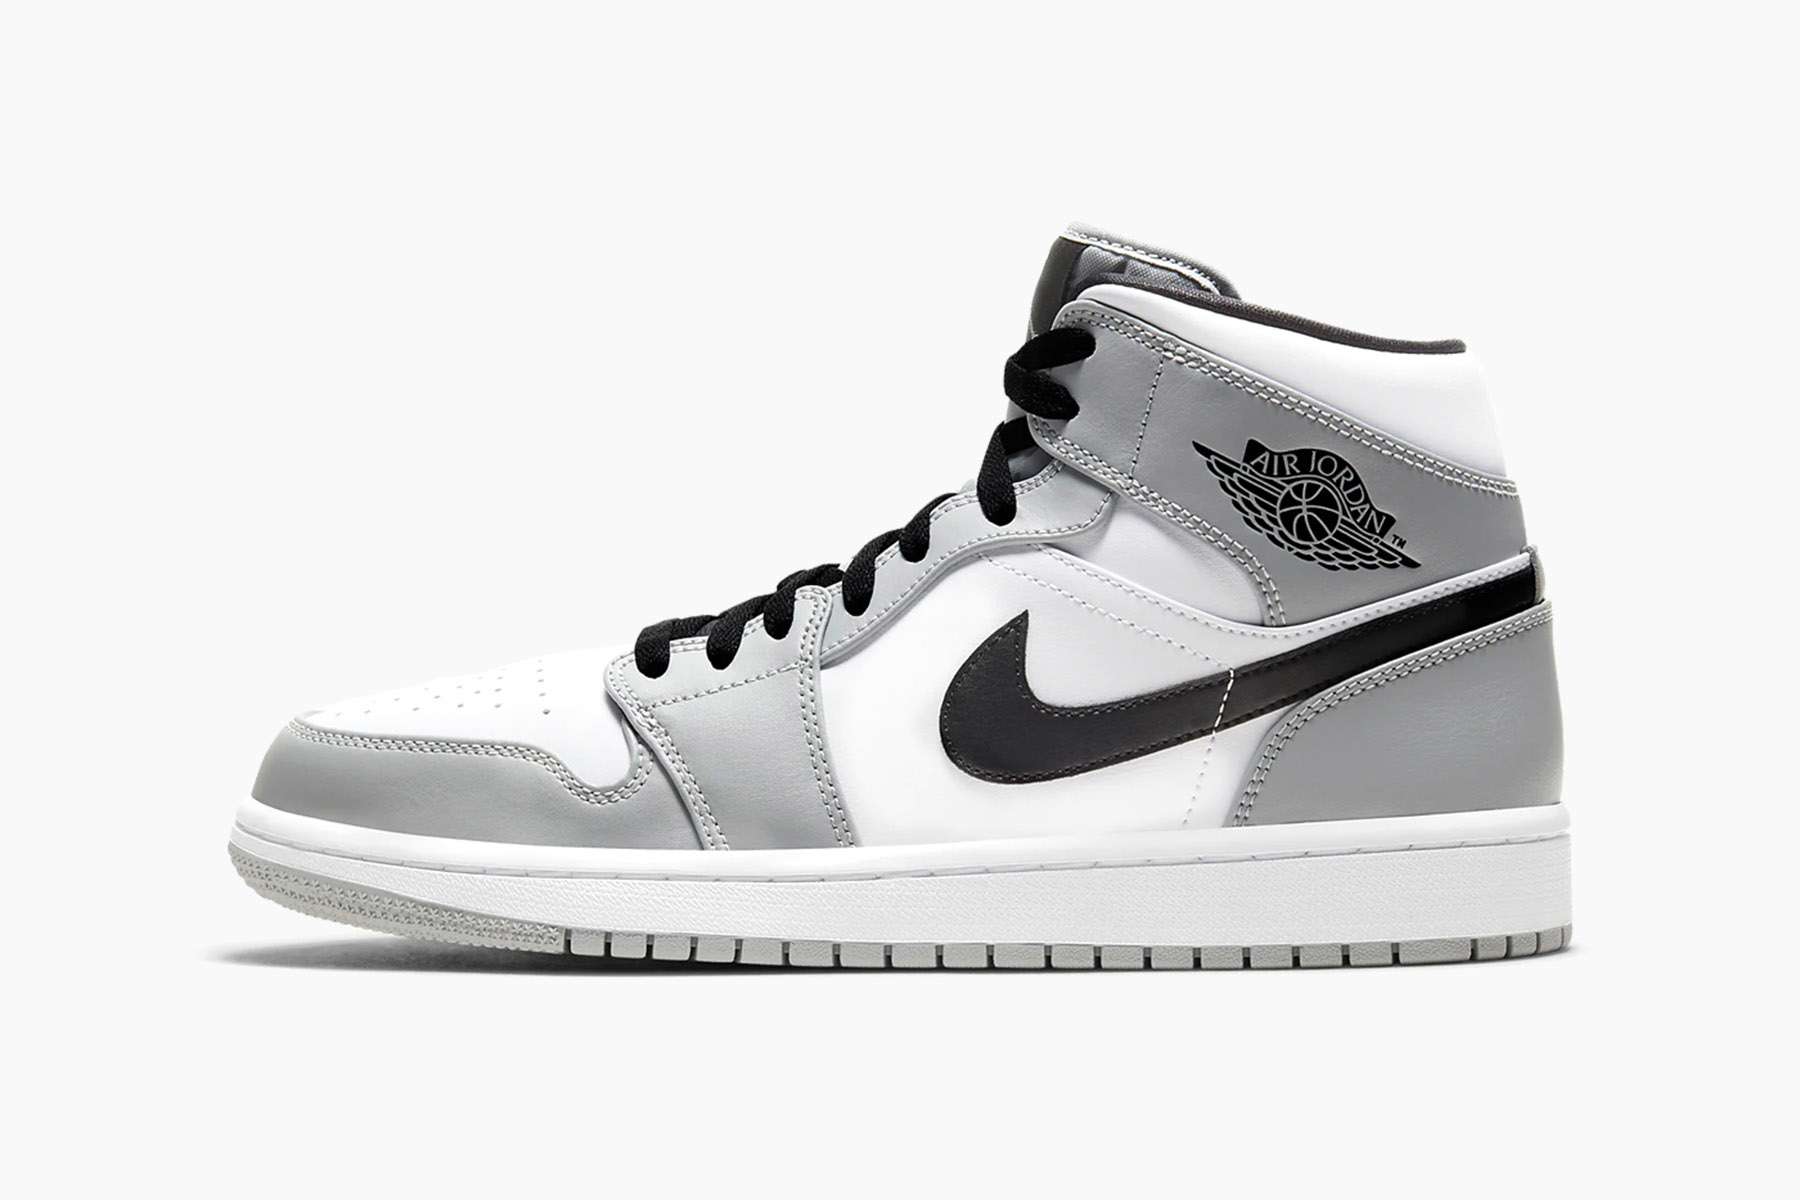 Air Jordan 1 Mid Light Ash White Black Release Hypebeast